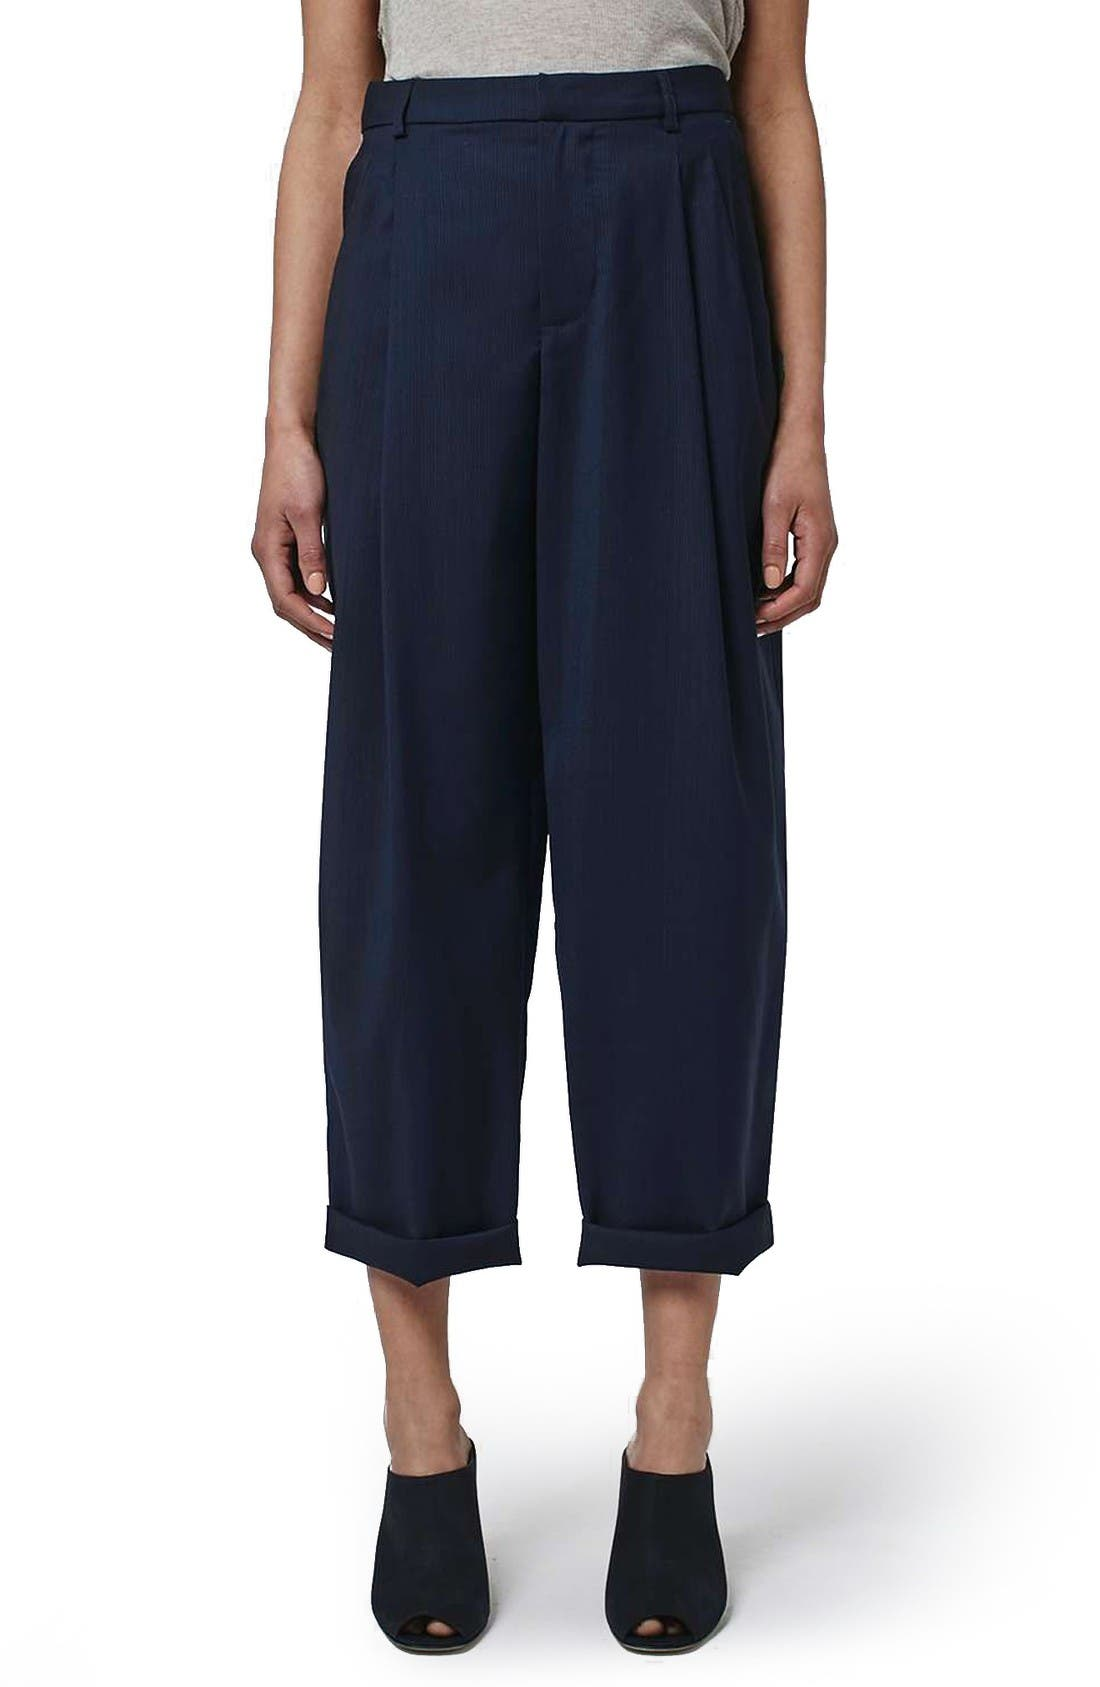 Alternate Image 1 Selected - Topshop Boutique Wool Trousers